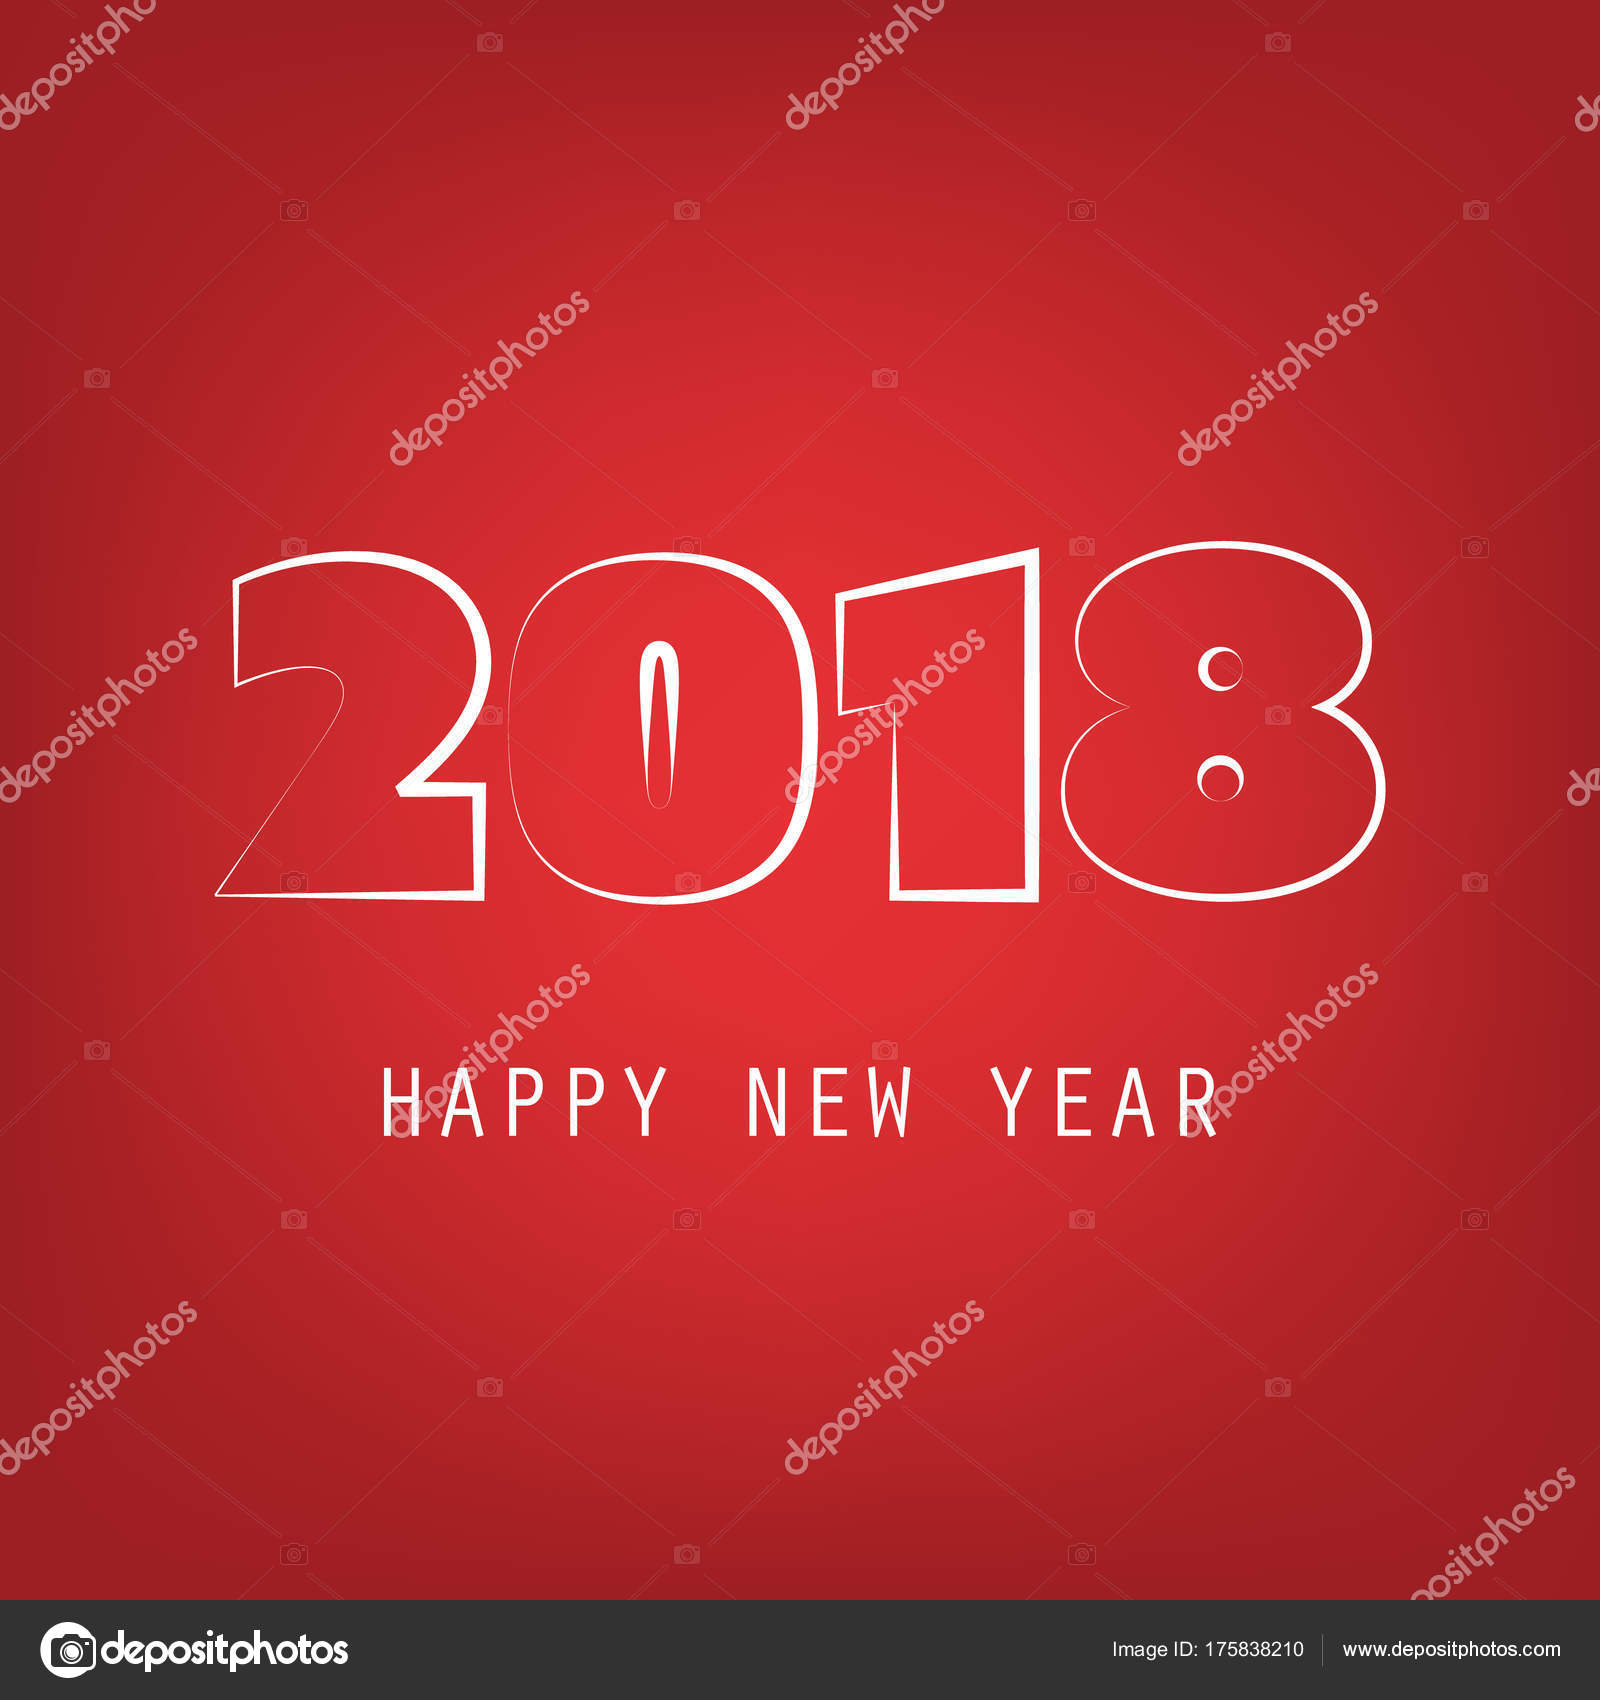 best wishes abstract colorful modern style new year card cover or background design template illustration in freely scalable and editable vector format